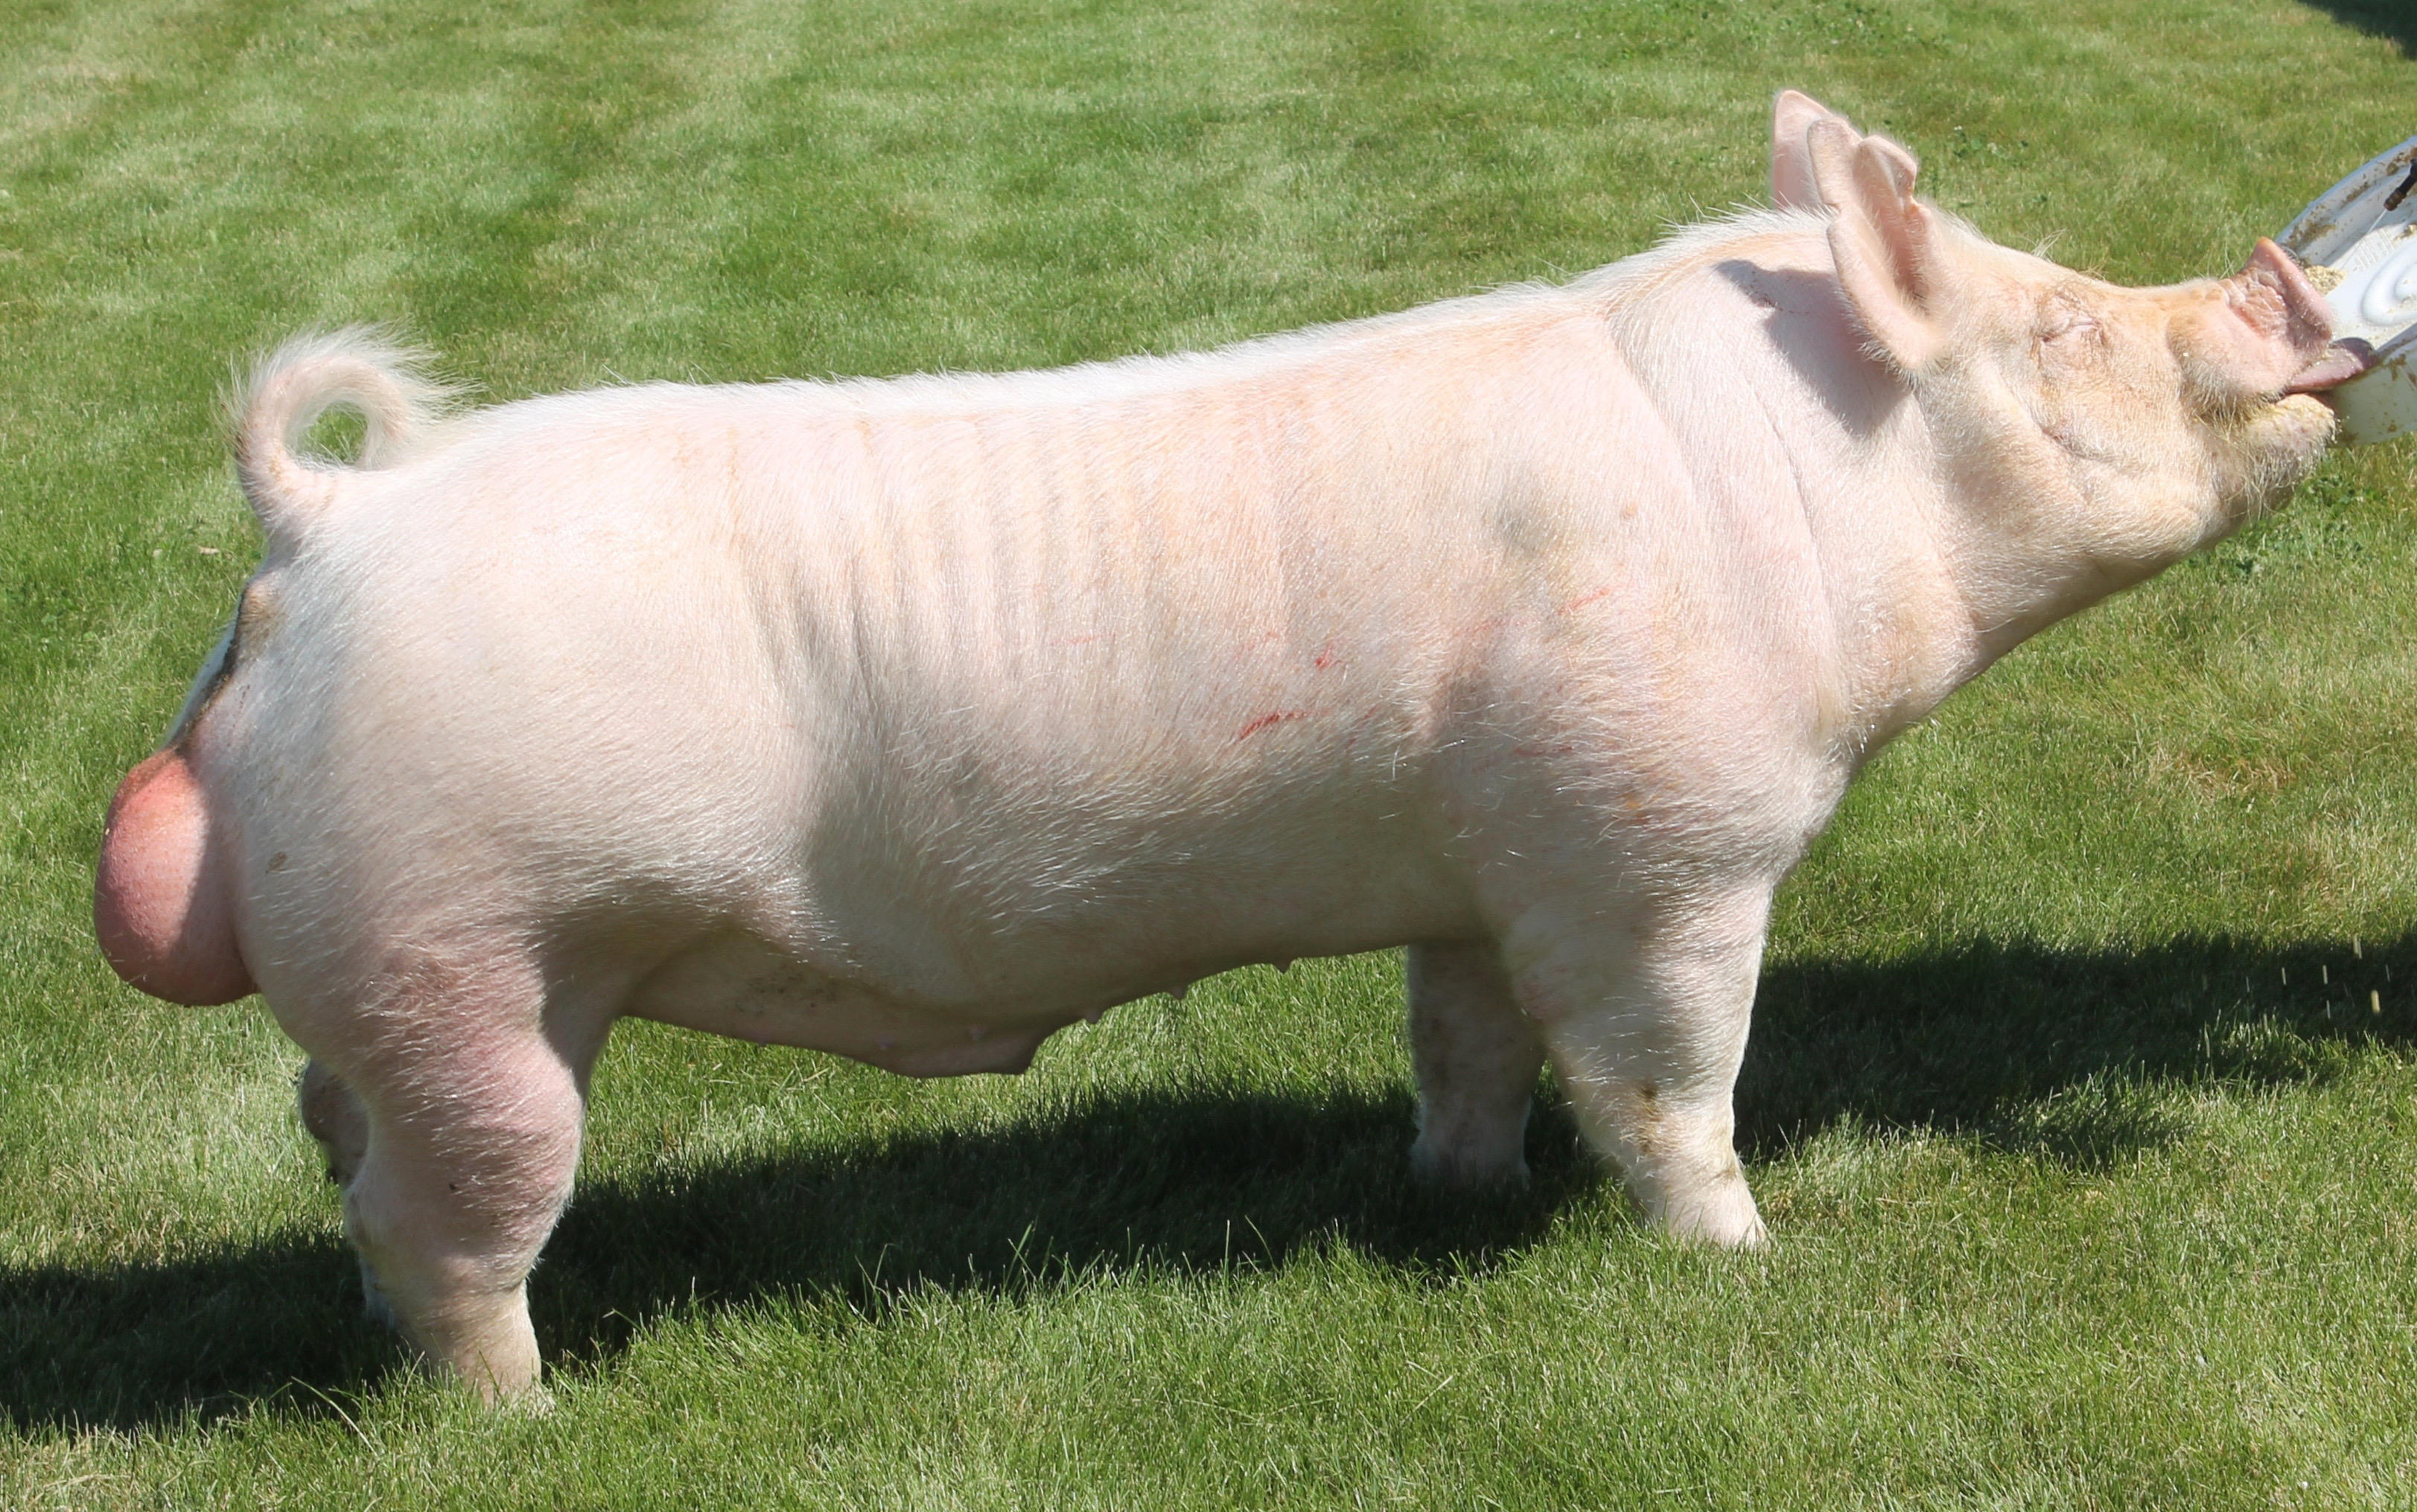 sire private drive dam platt attackmother of moonwalk bred by platt showpigs ear notch 39 1 registration 564208001